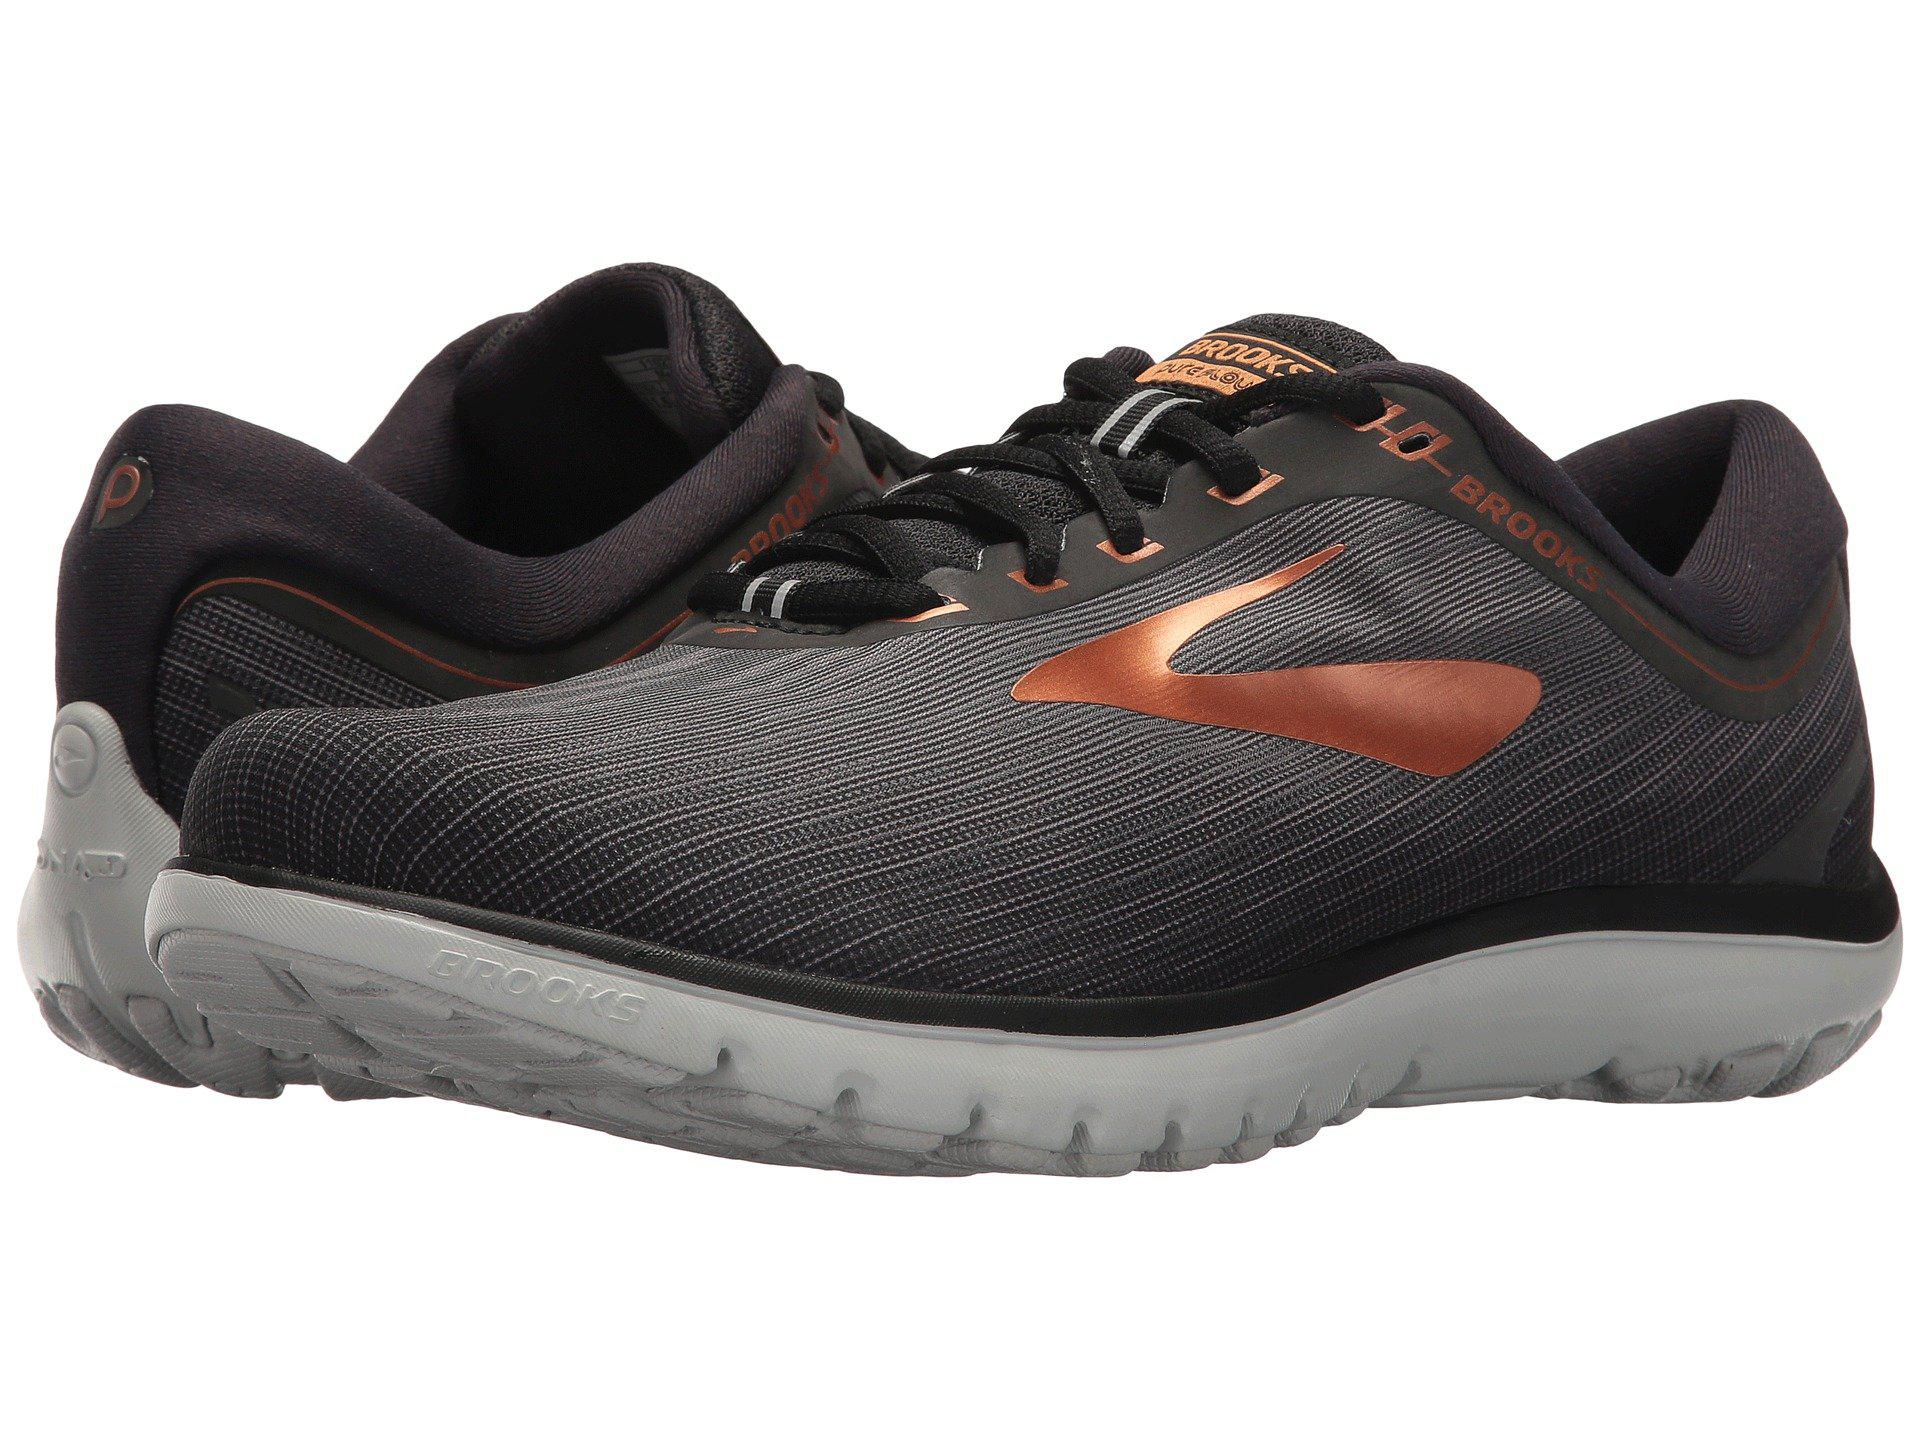 457914541a1 Lyst - Brooks Pureflow 7 (grey grey black) Men s Running Shoes in ...